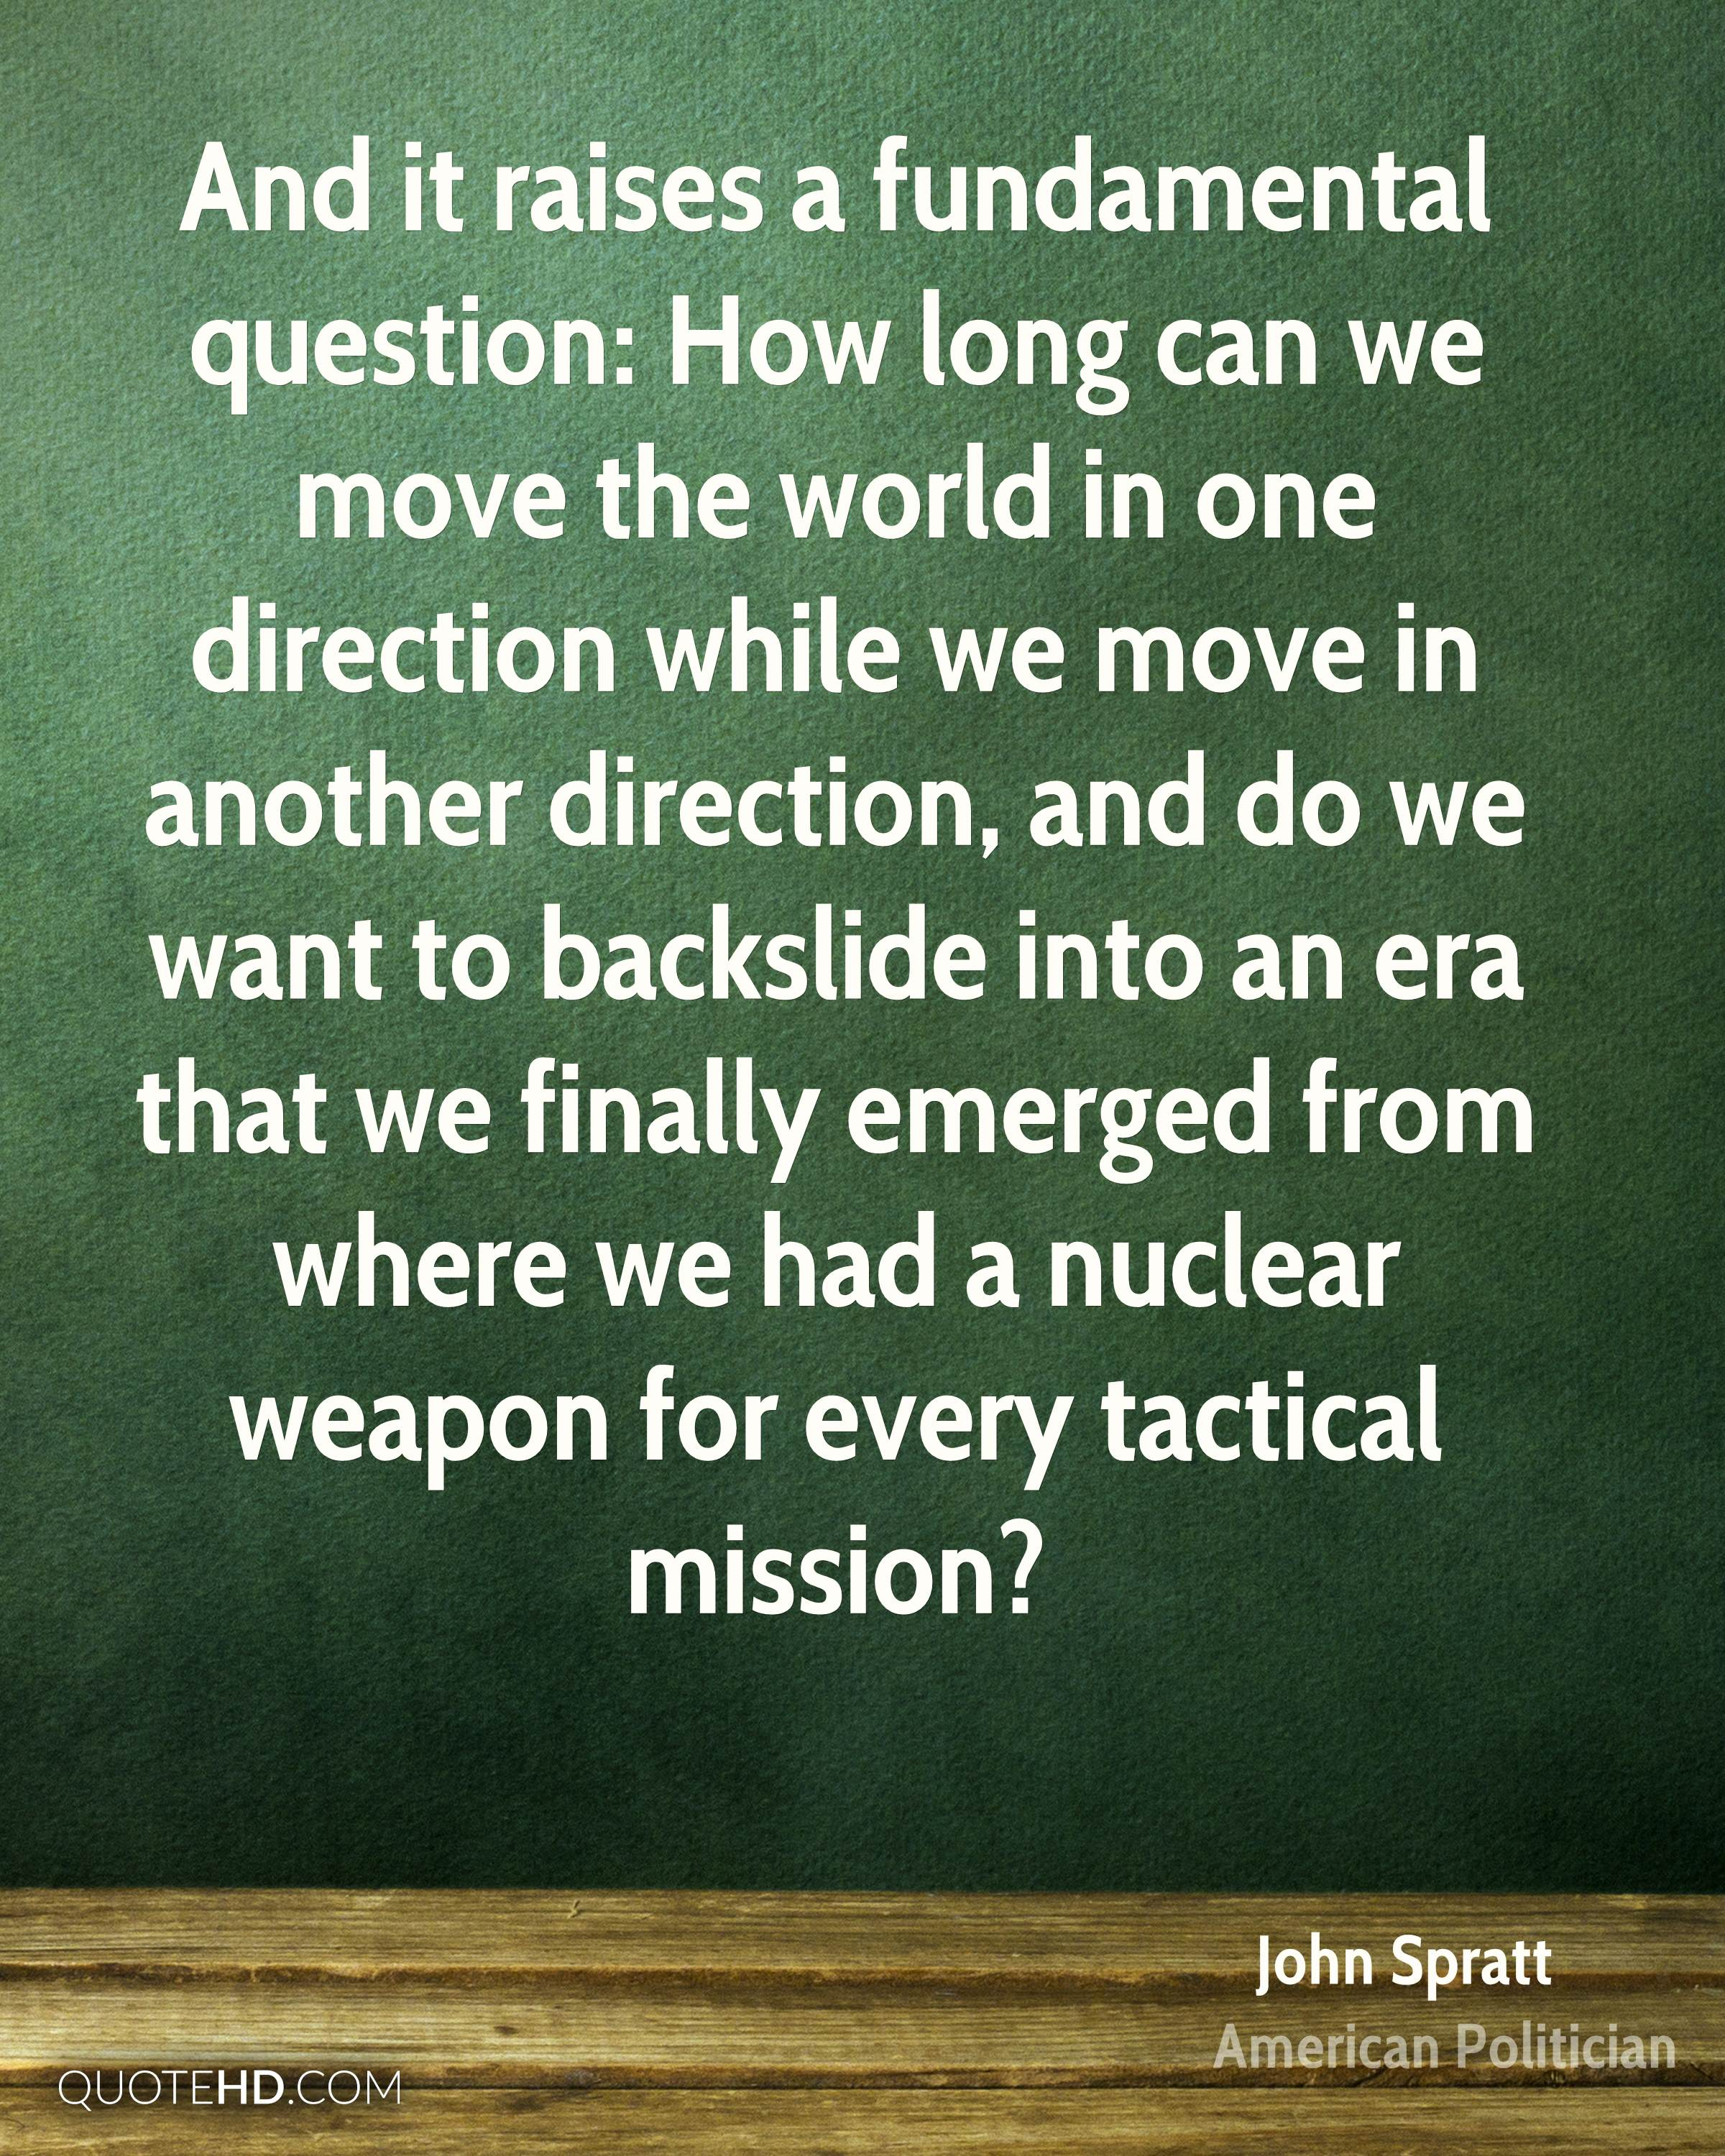 And it raises a fundamental question: How long can we move the world in one direction while we move in another direction, and do we want to backslide into an era that we finally emerged from where we had a nuclear weapon for every tactical mission?